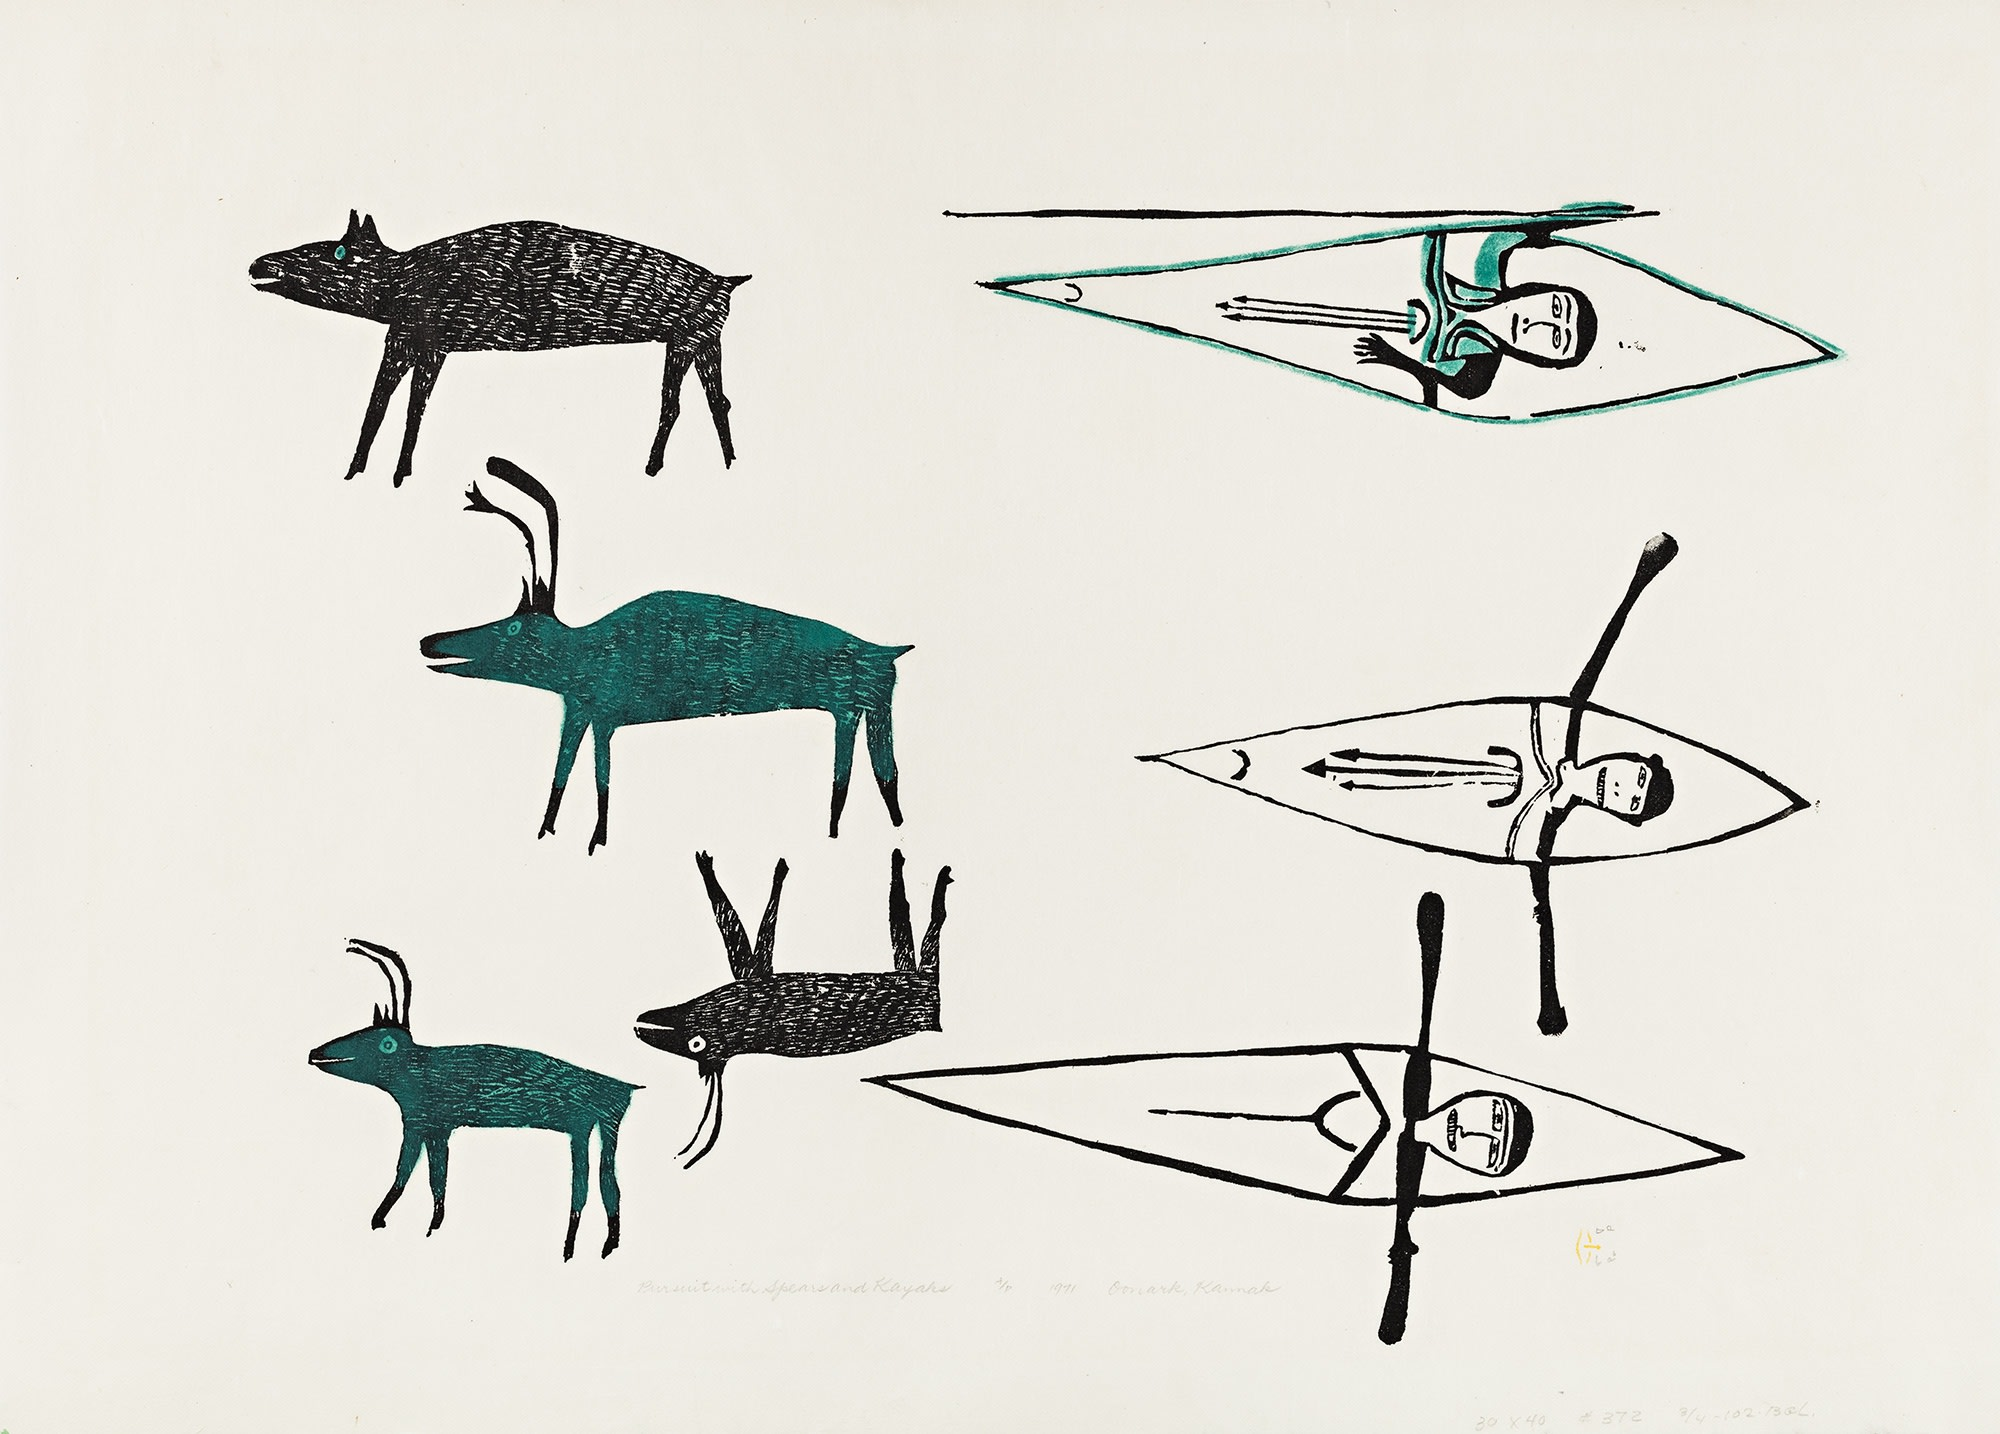 Lot 45, Jessie Oonark, Pursuit with Spears and Kayak, 1971